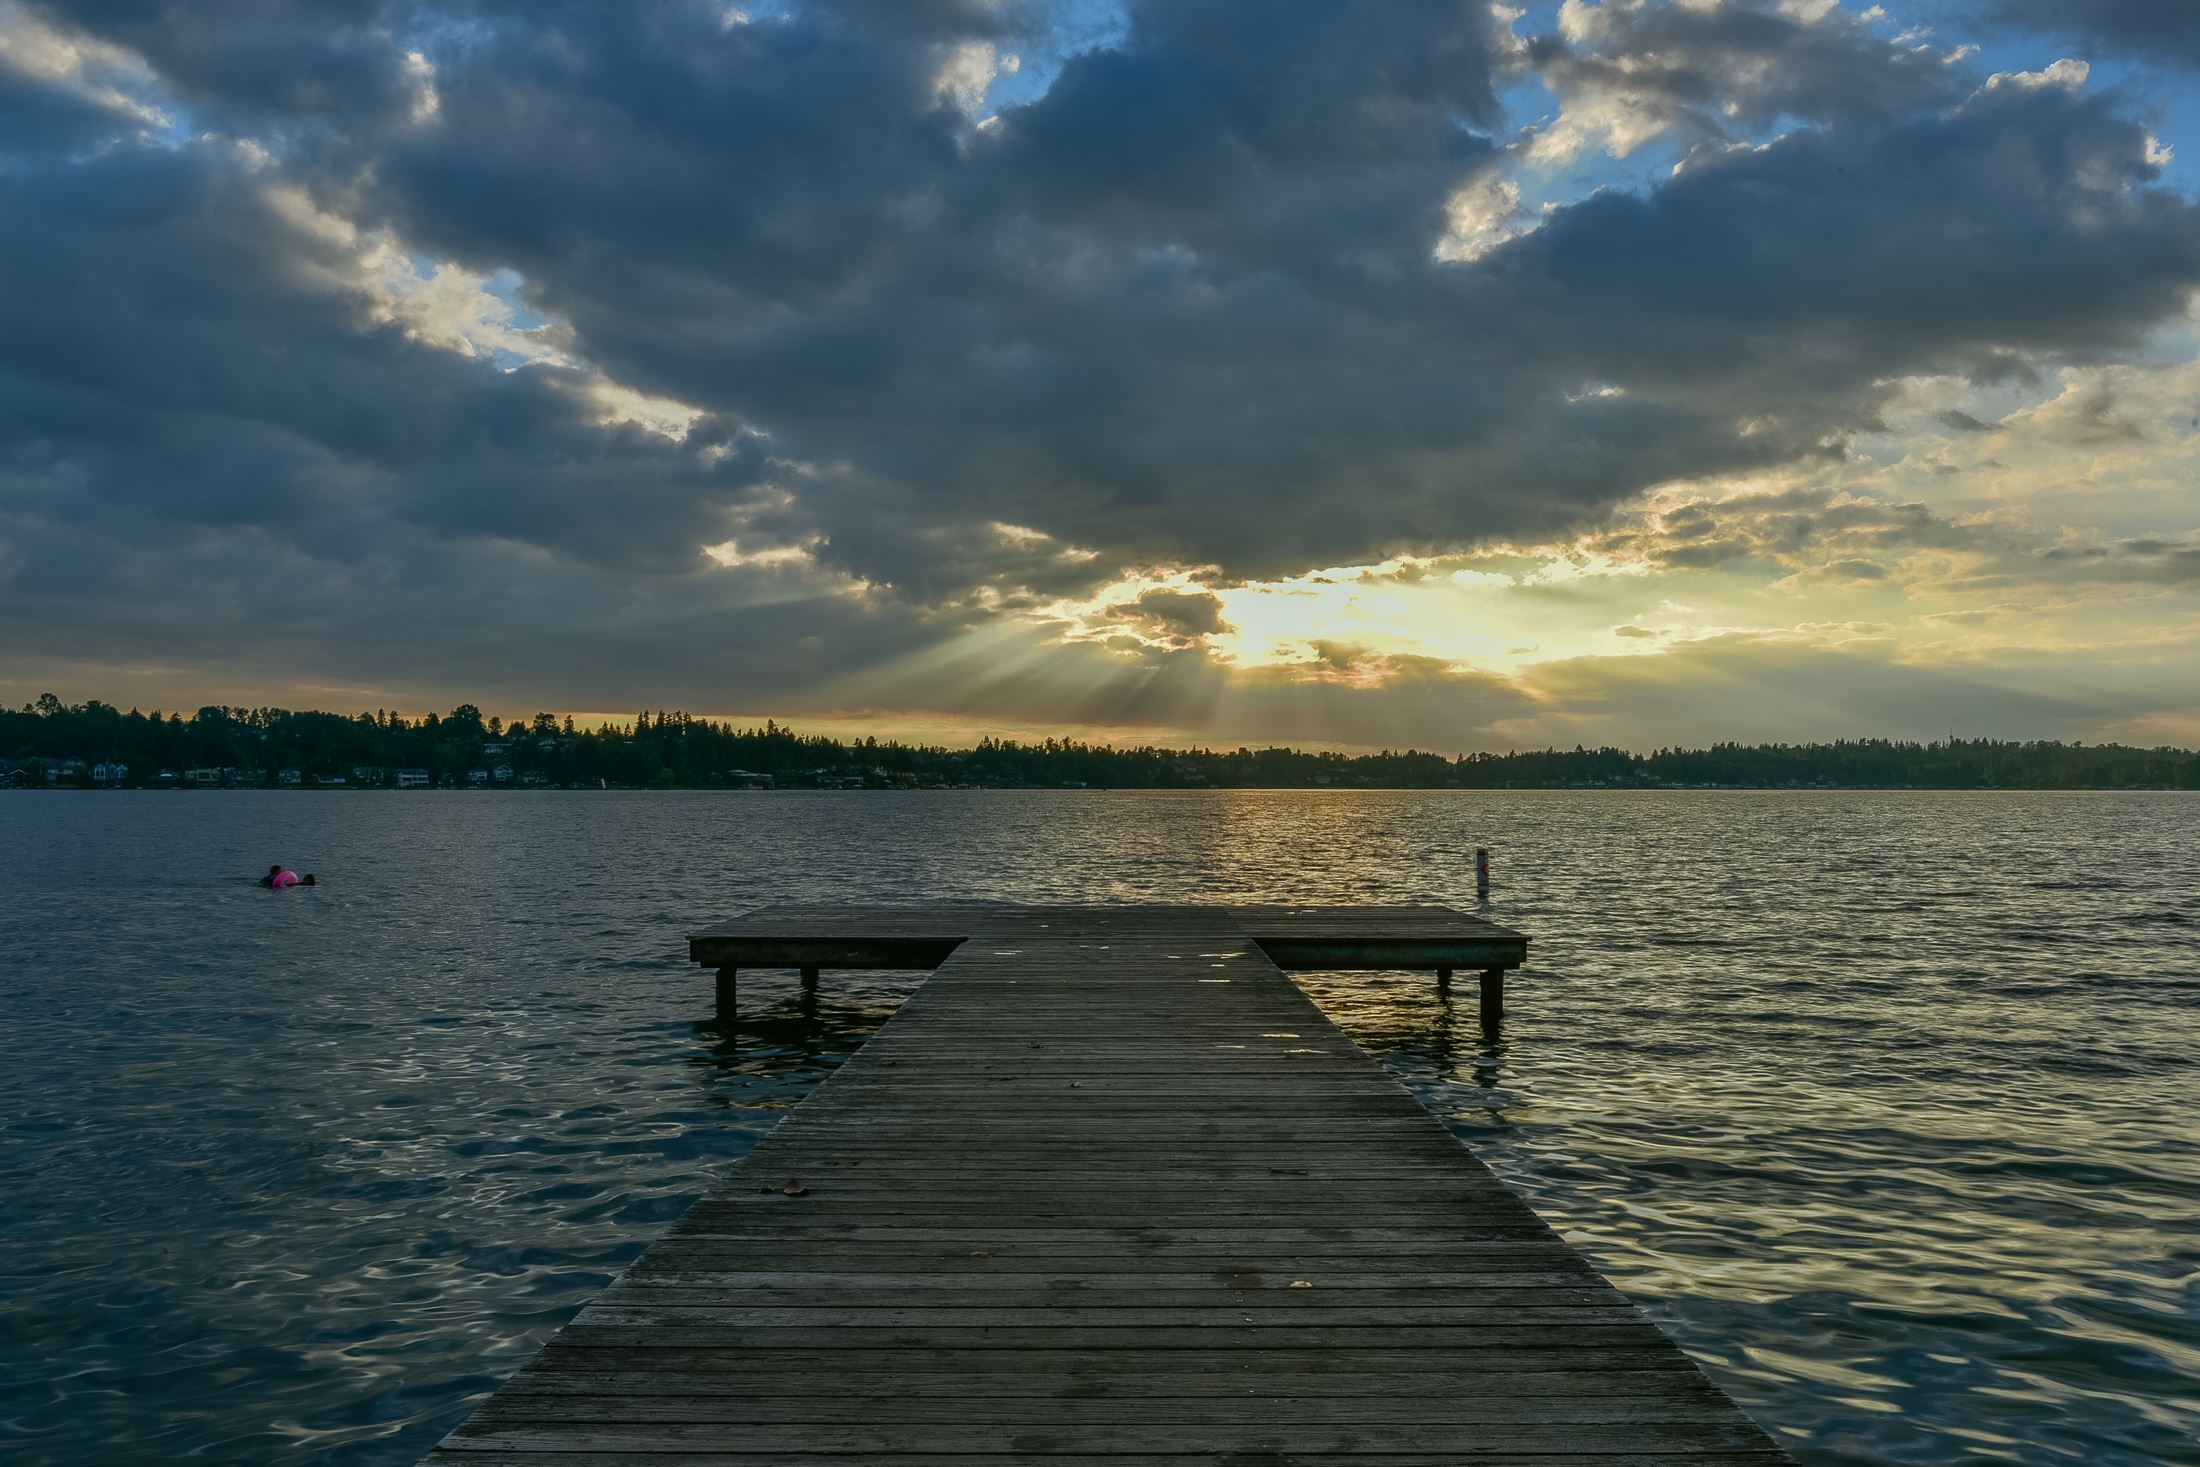 Picture of a dock on lake stevens during sunset